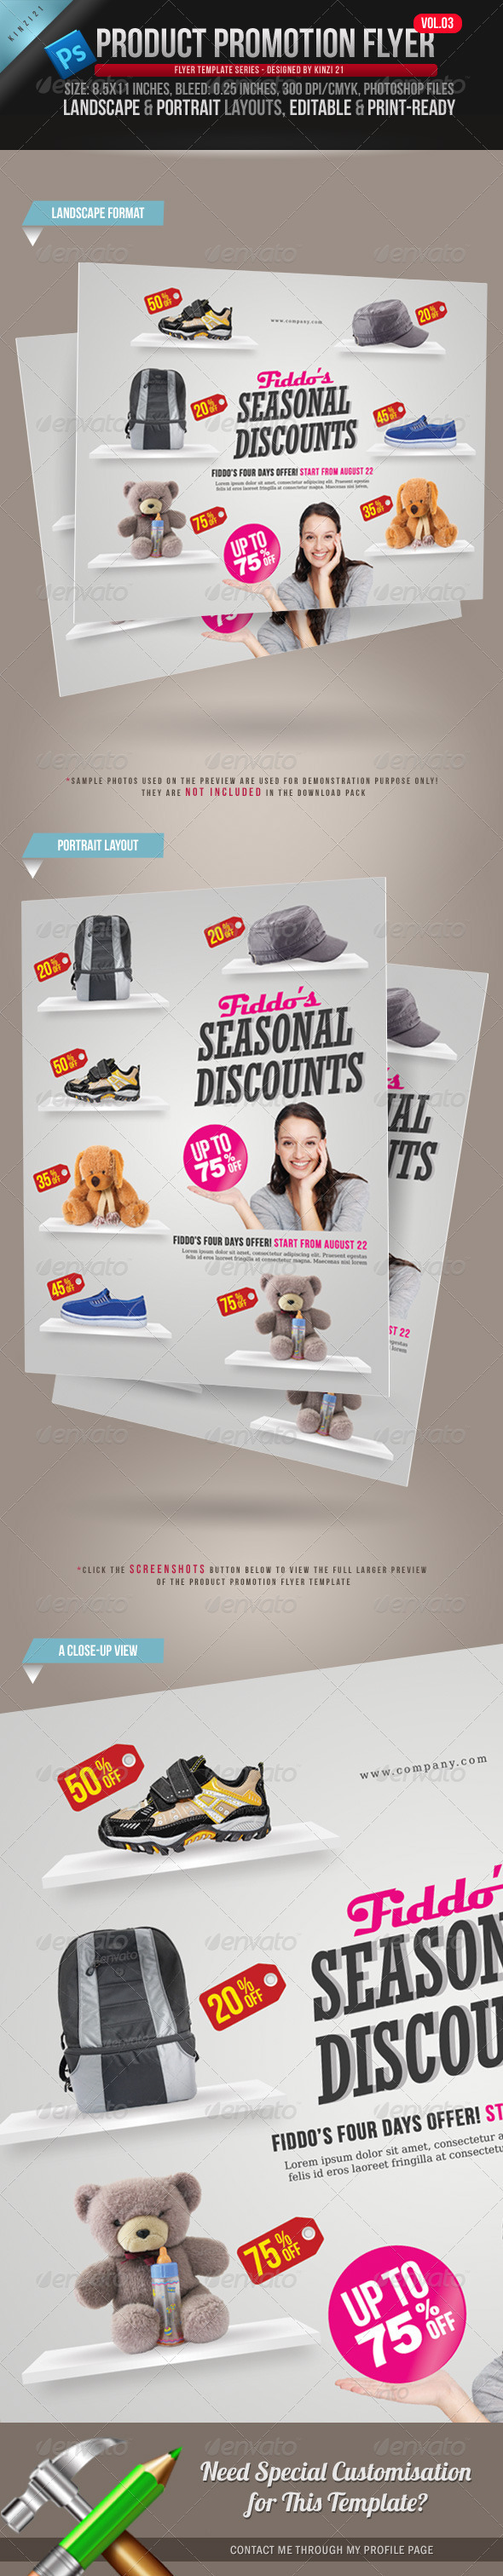 GraphicRiver Product Promotion Flyer Vol 03 2411413